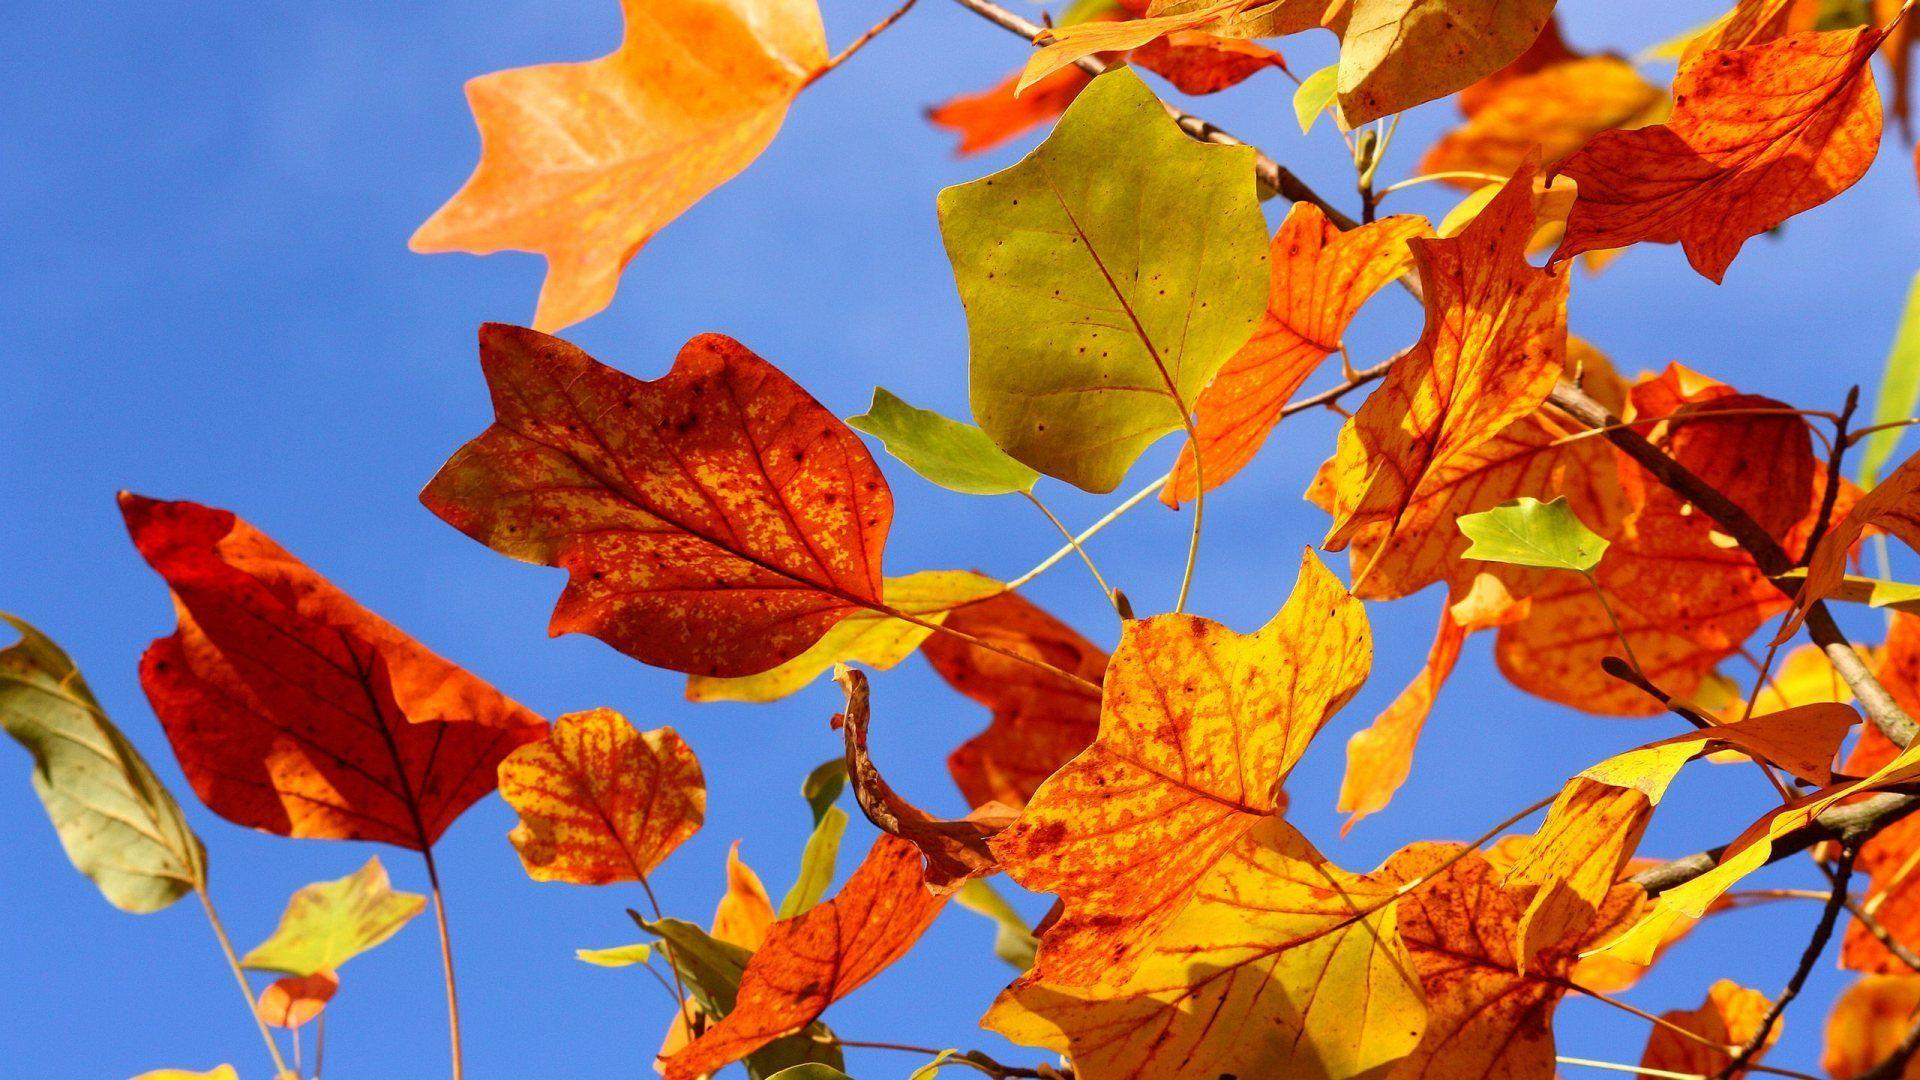 Fall Leaves Desktop Wallpaper - Widescreen HD Wallpapers | Leaves ...